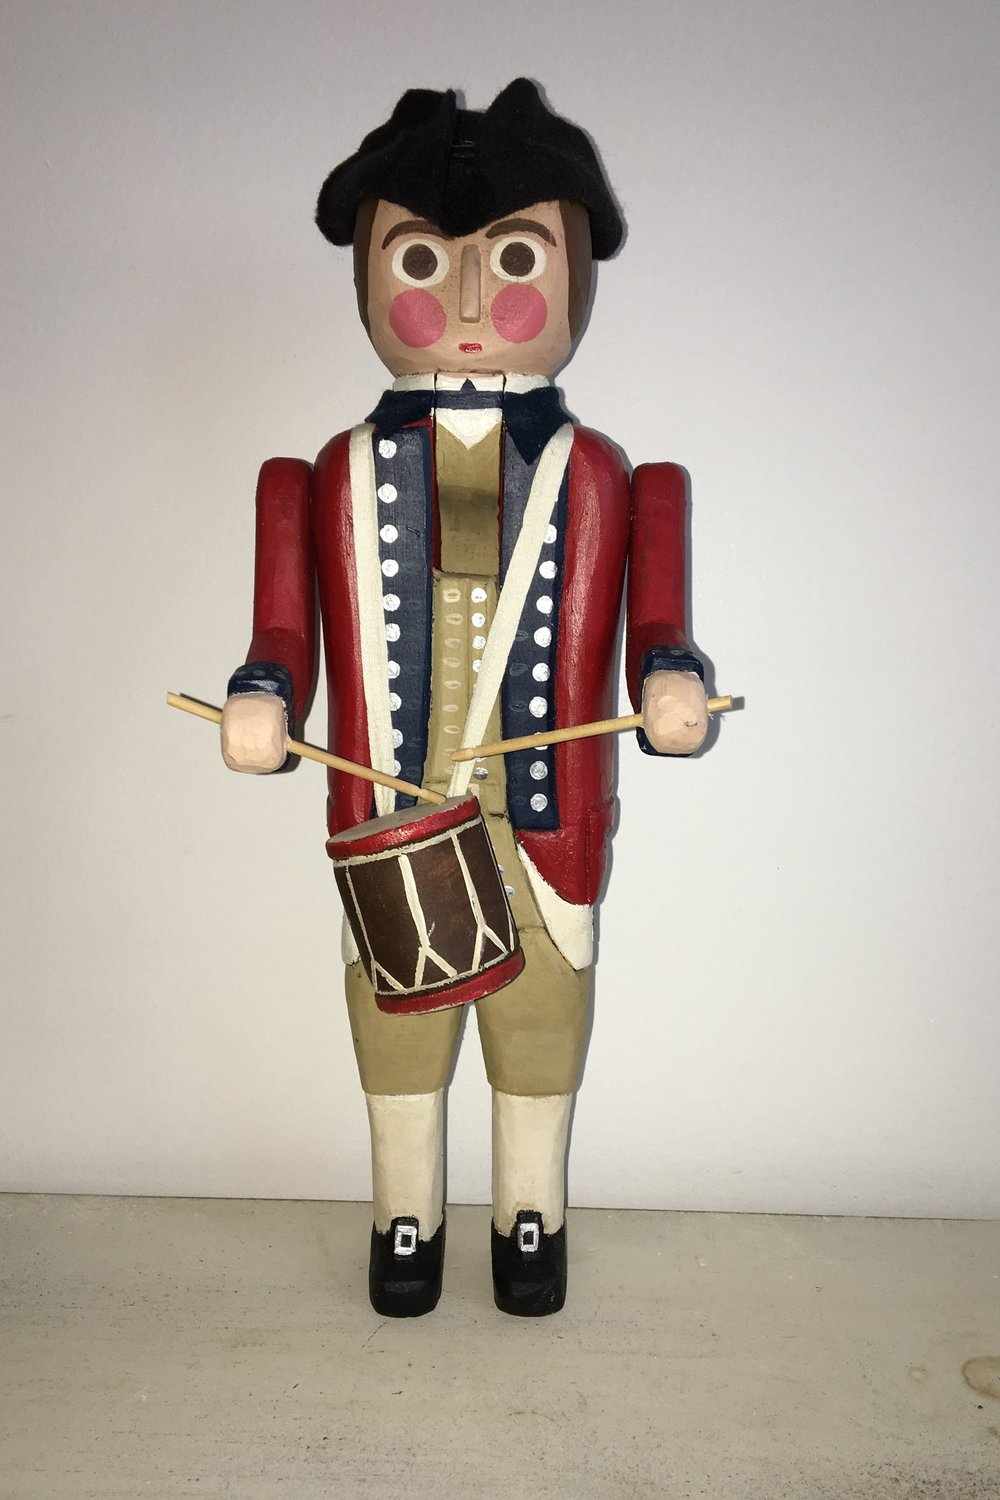 Bristish Drummer Nutcracker:   To add this piece   to your collection, you can email us through the contact page.